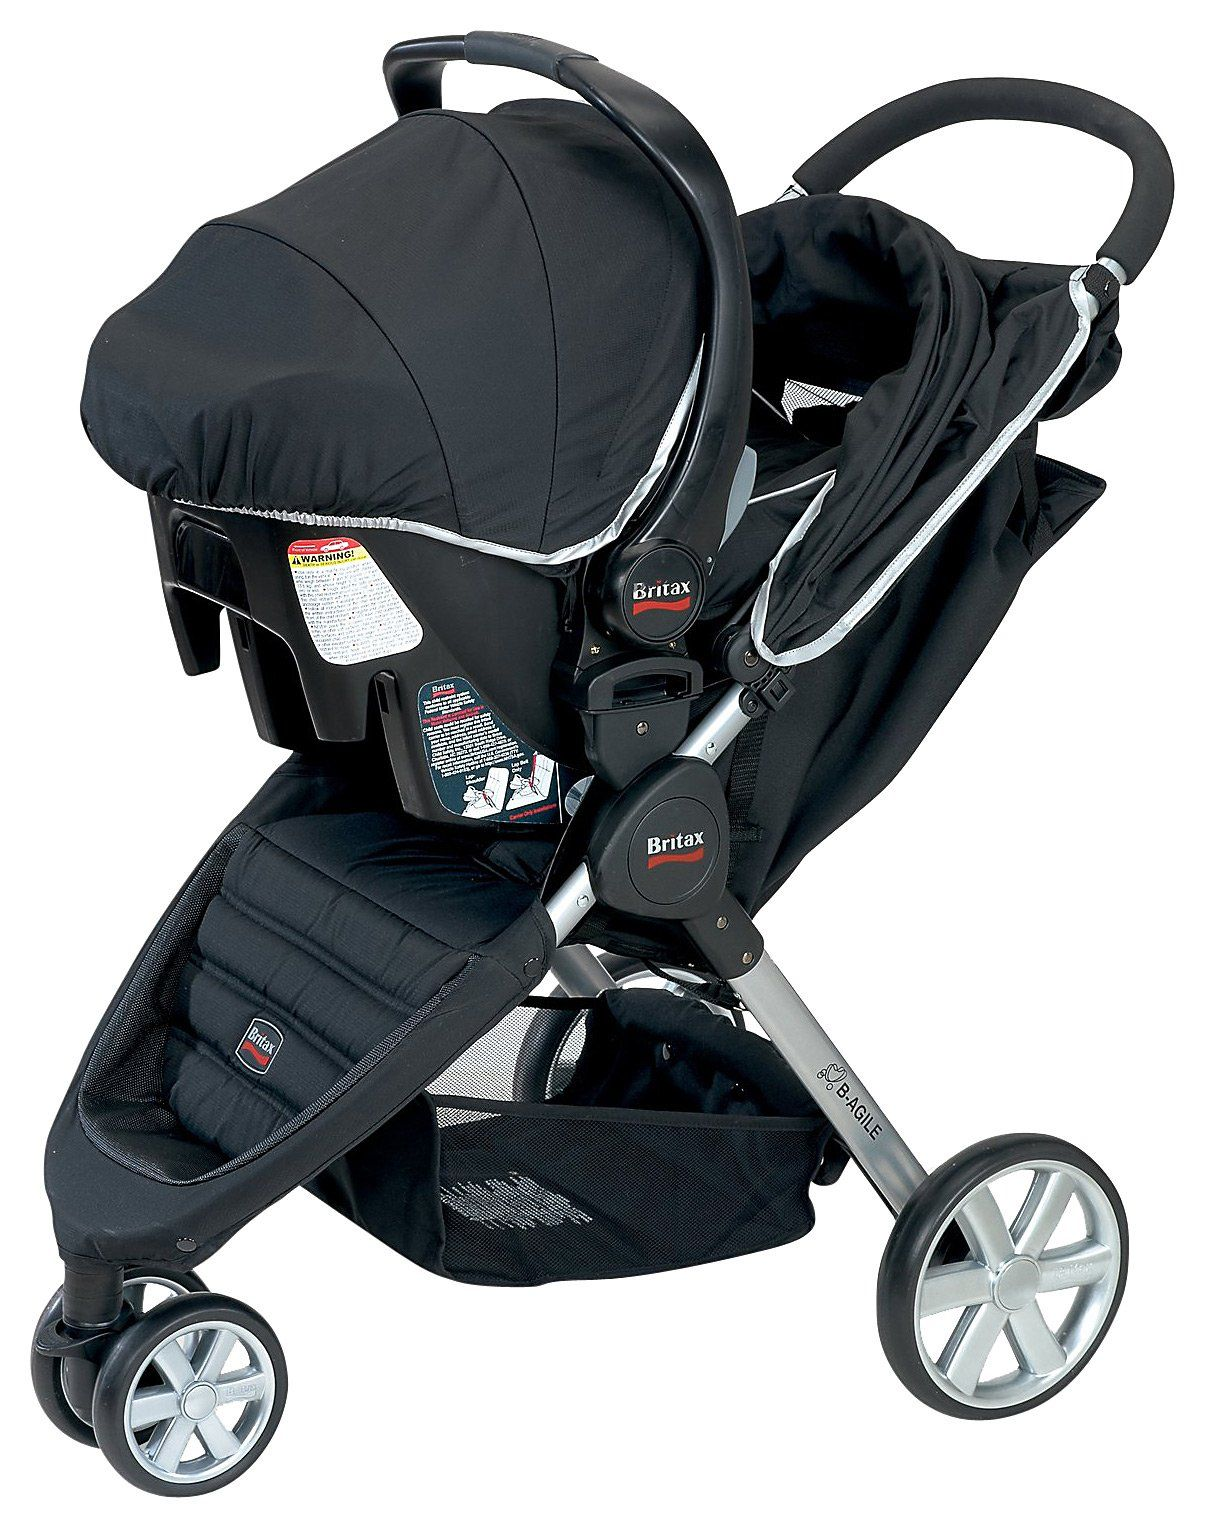 Britax Car Seat With Stroller Britax B Safe Infant Car Seat Black Best Price Good